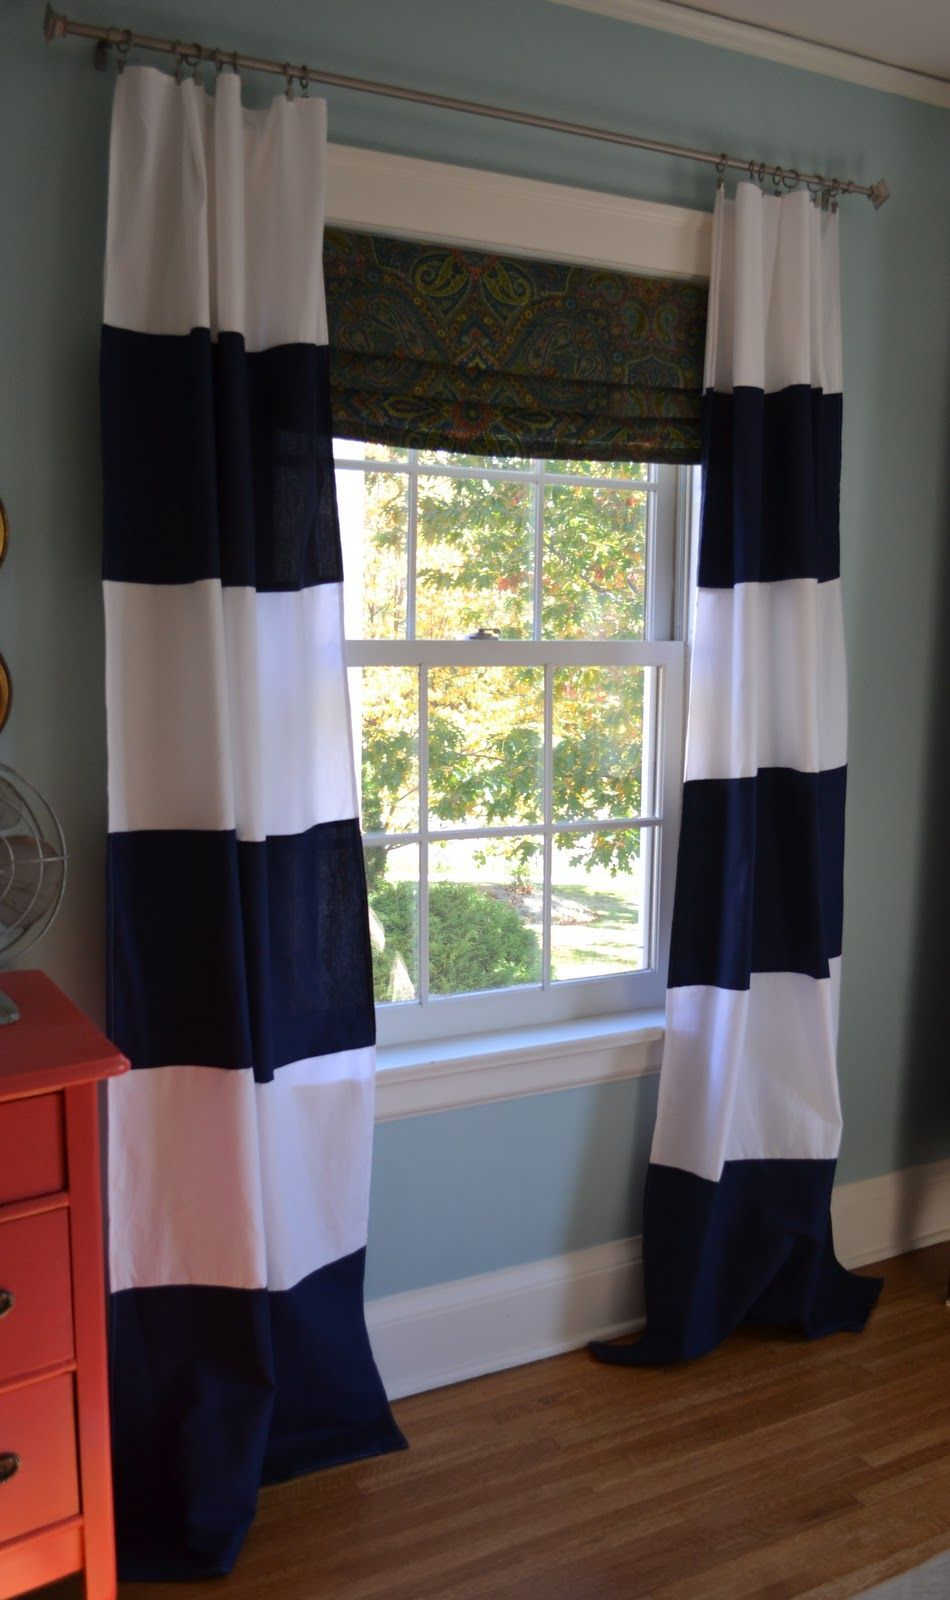 Navy Blue And White Striped Curtain Panels I Want These For Judah 39 S Room Gotta Find Where They